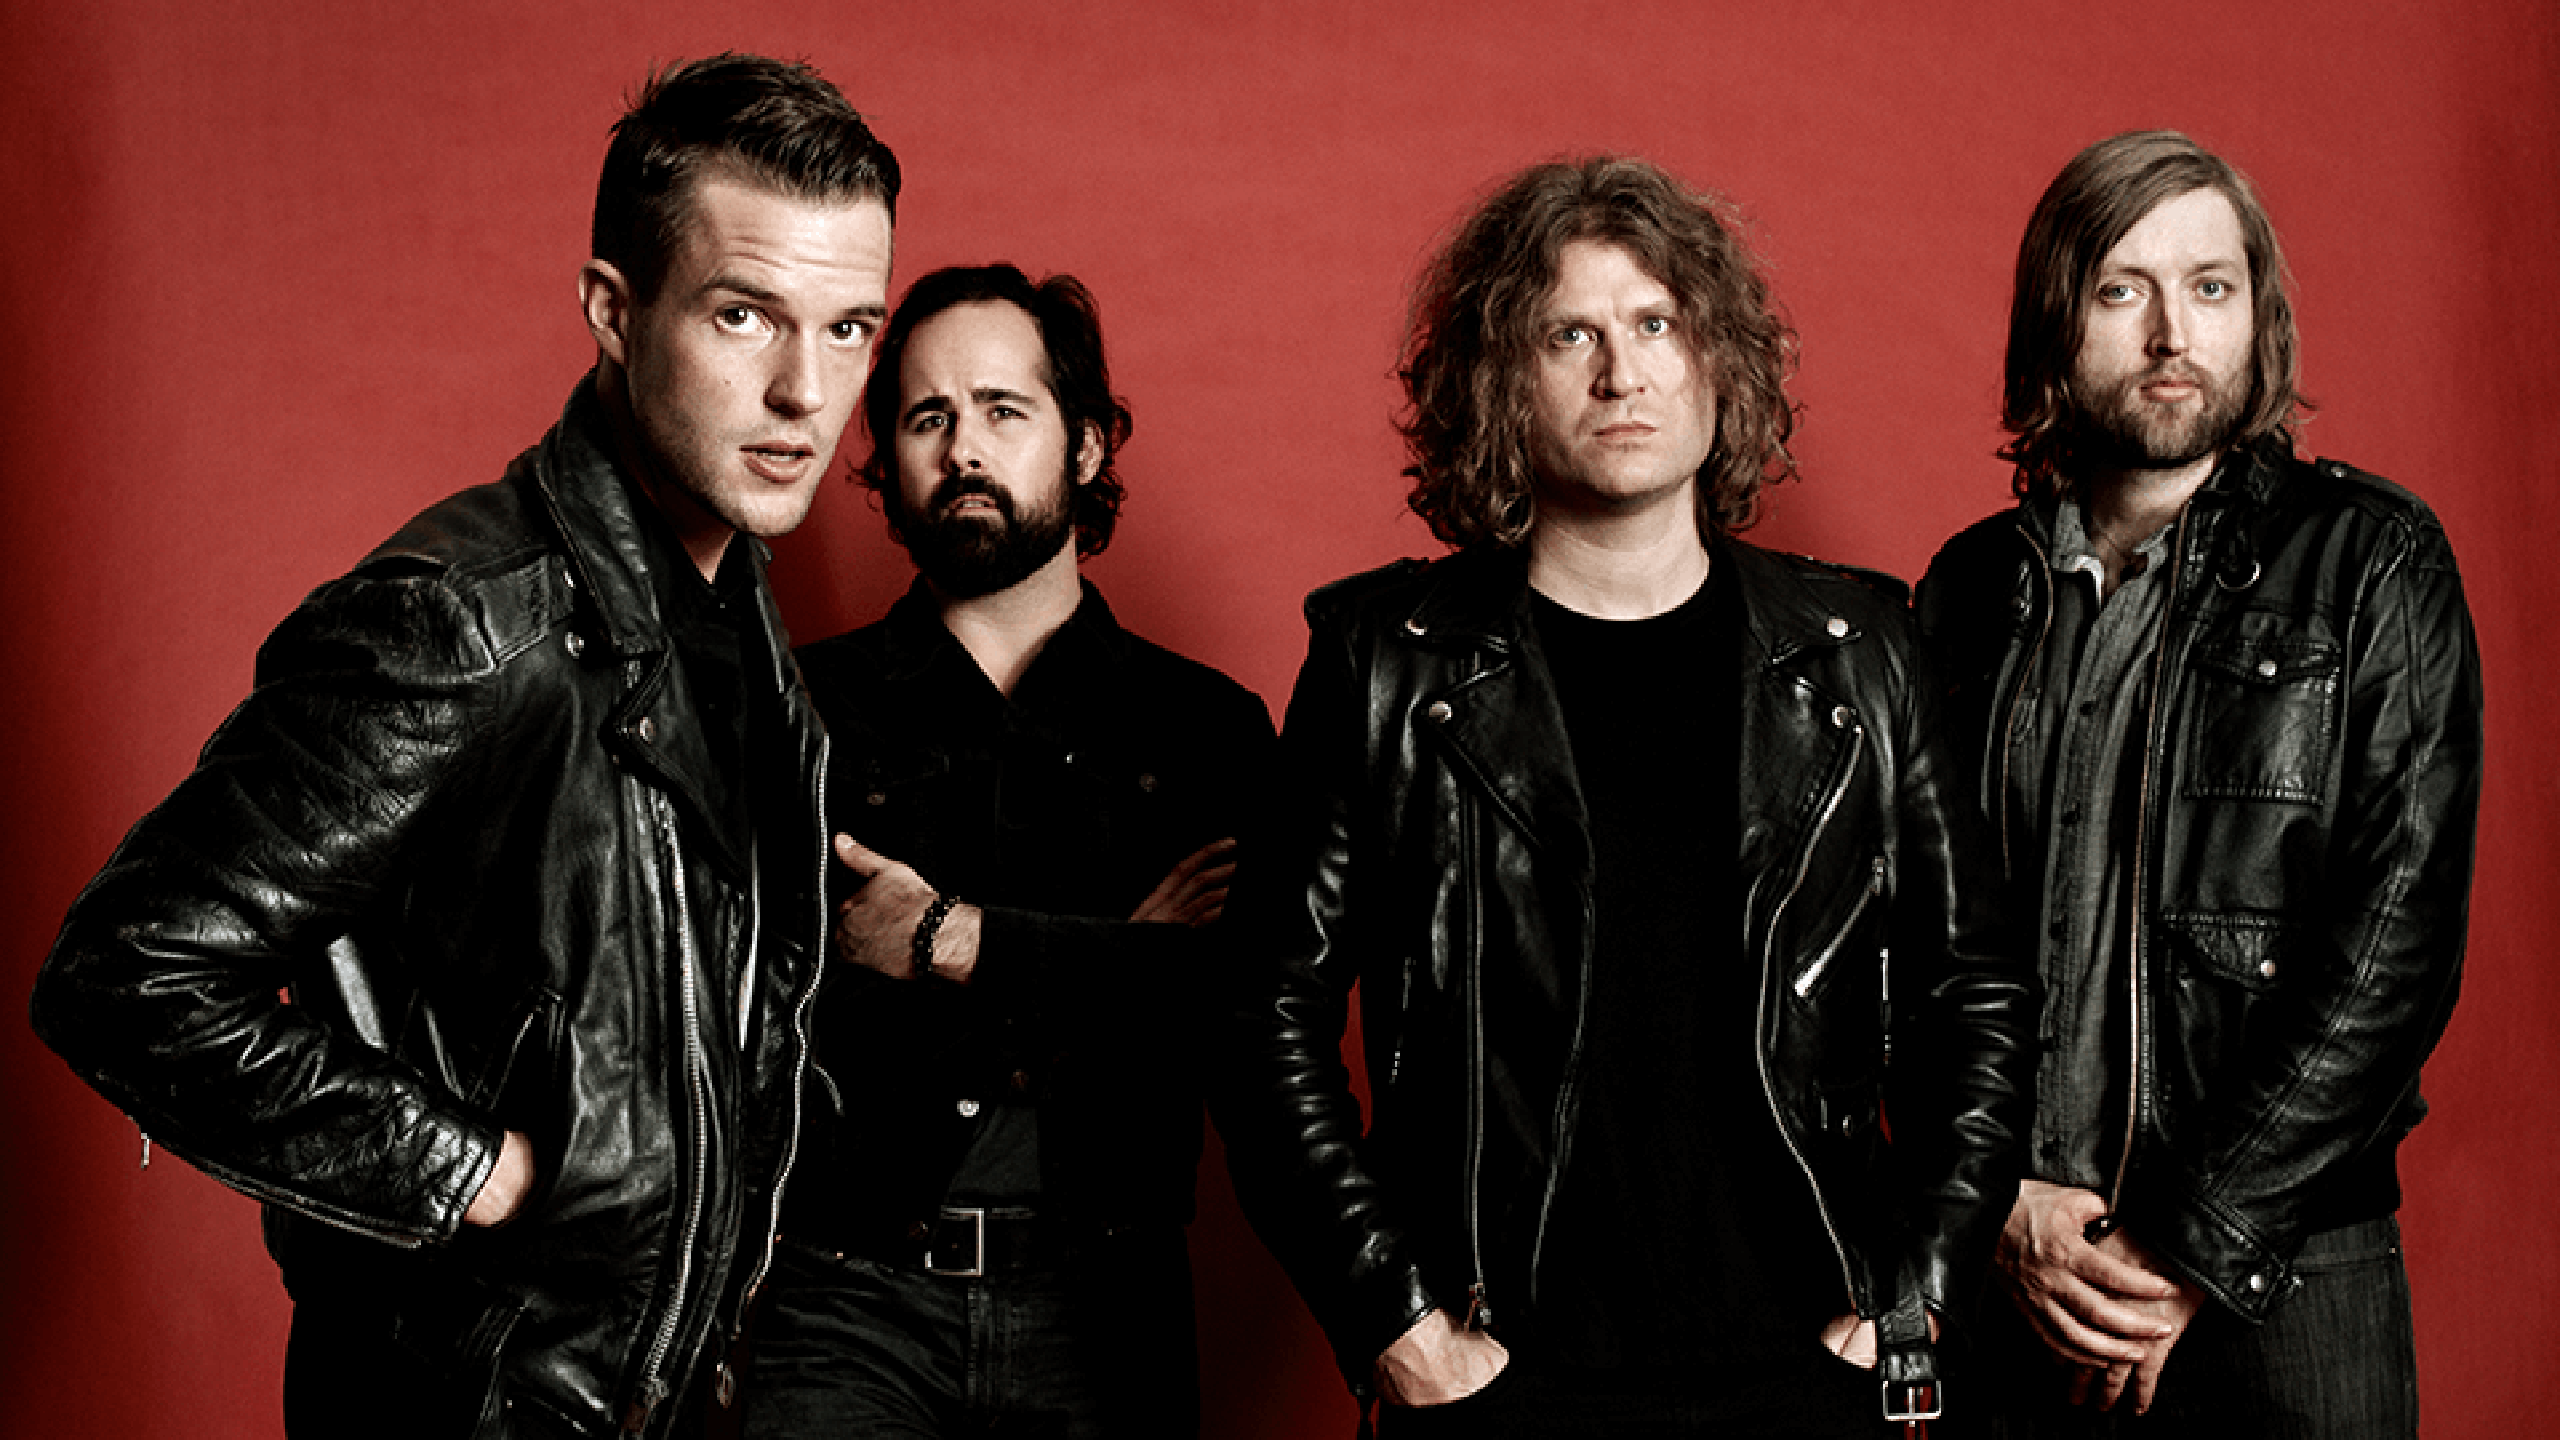 The Killers [POSTPONED] at Gorge Amphitheatre